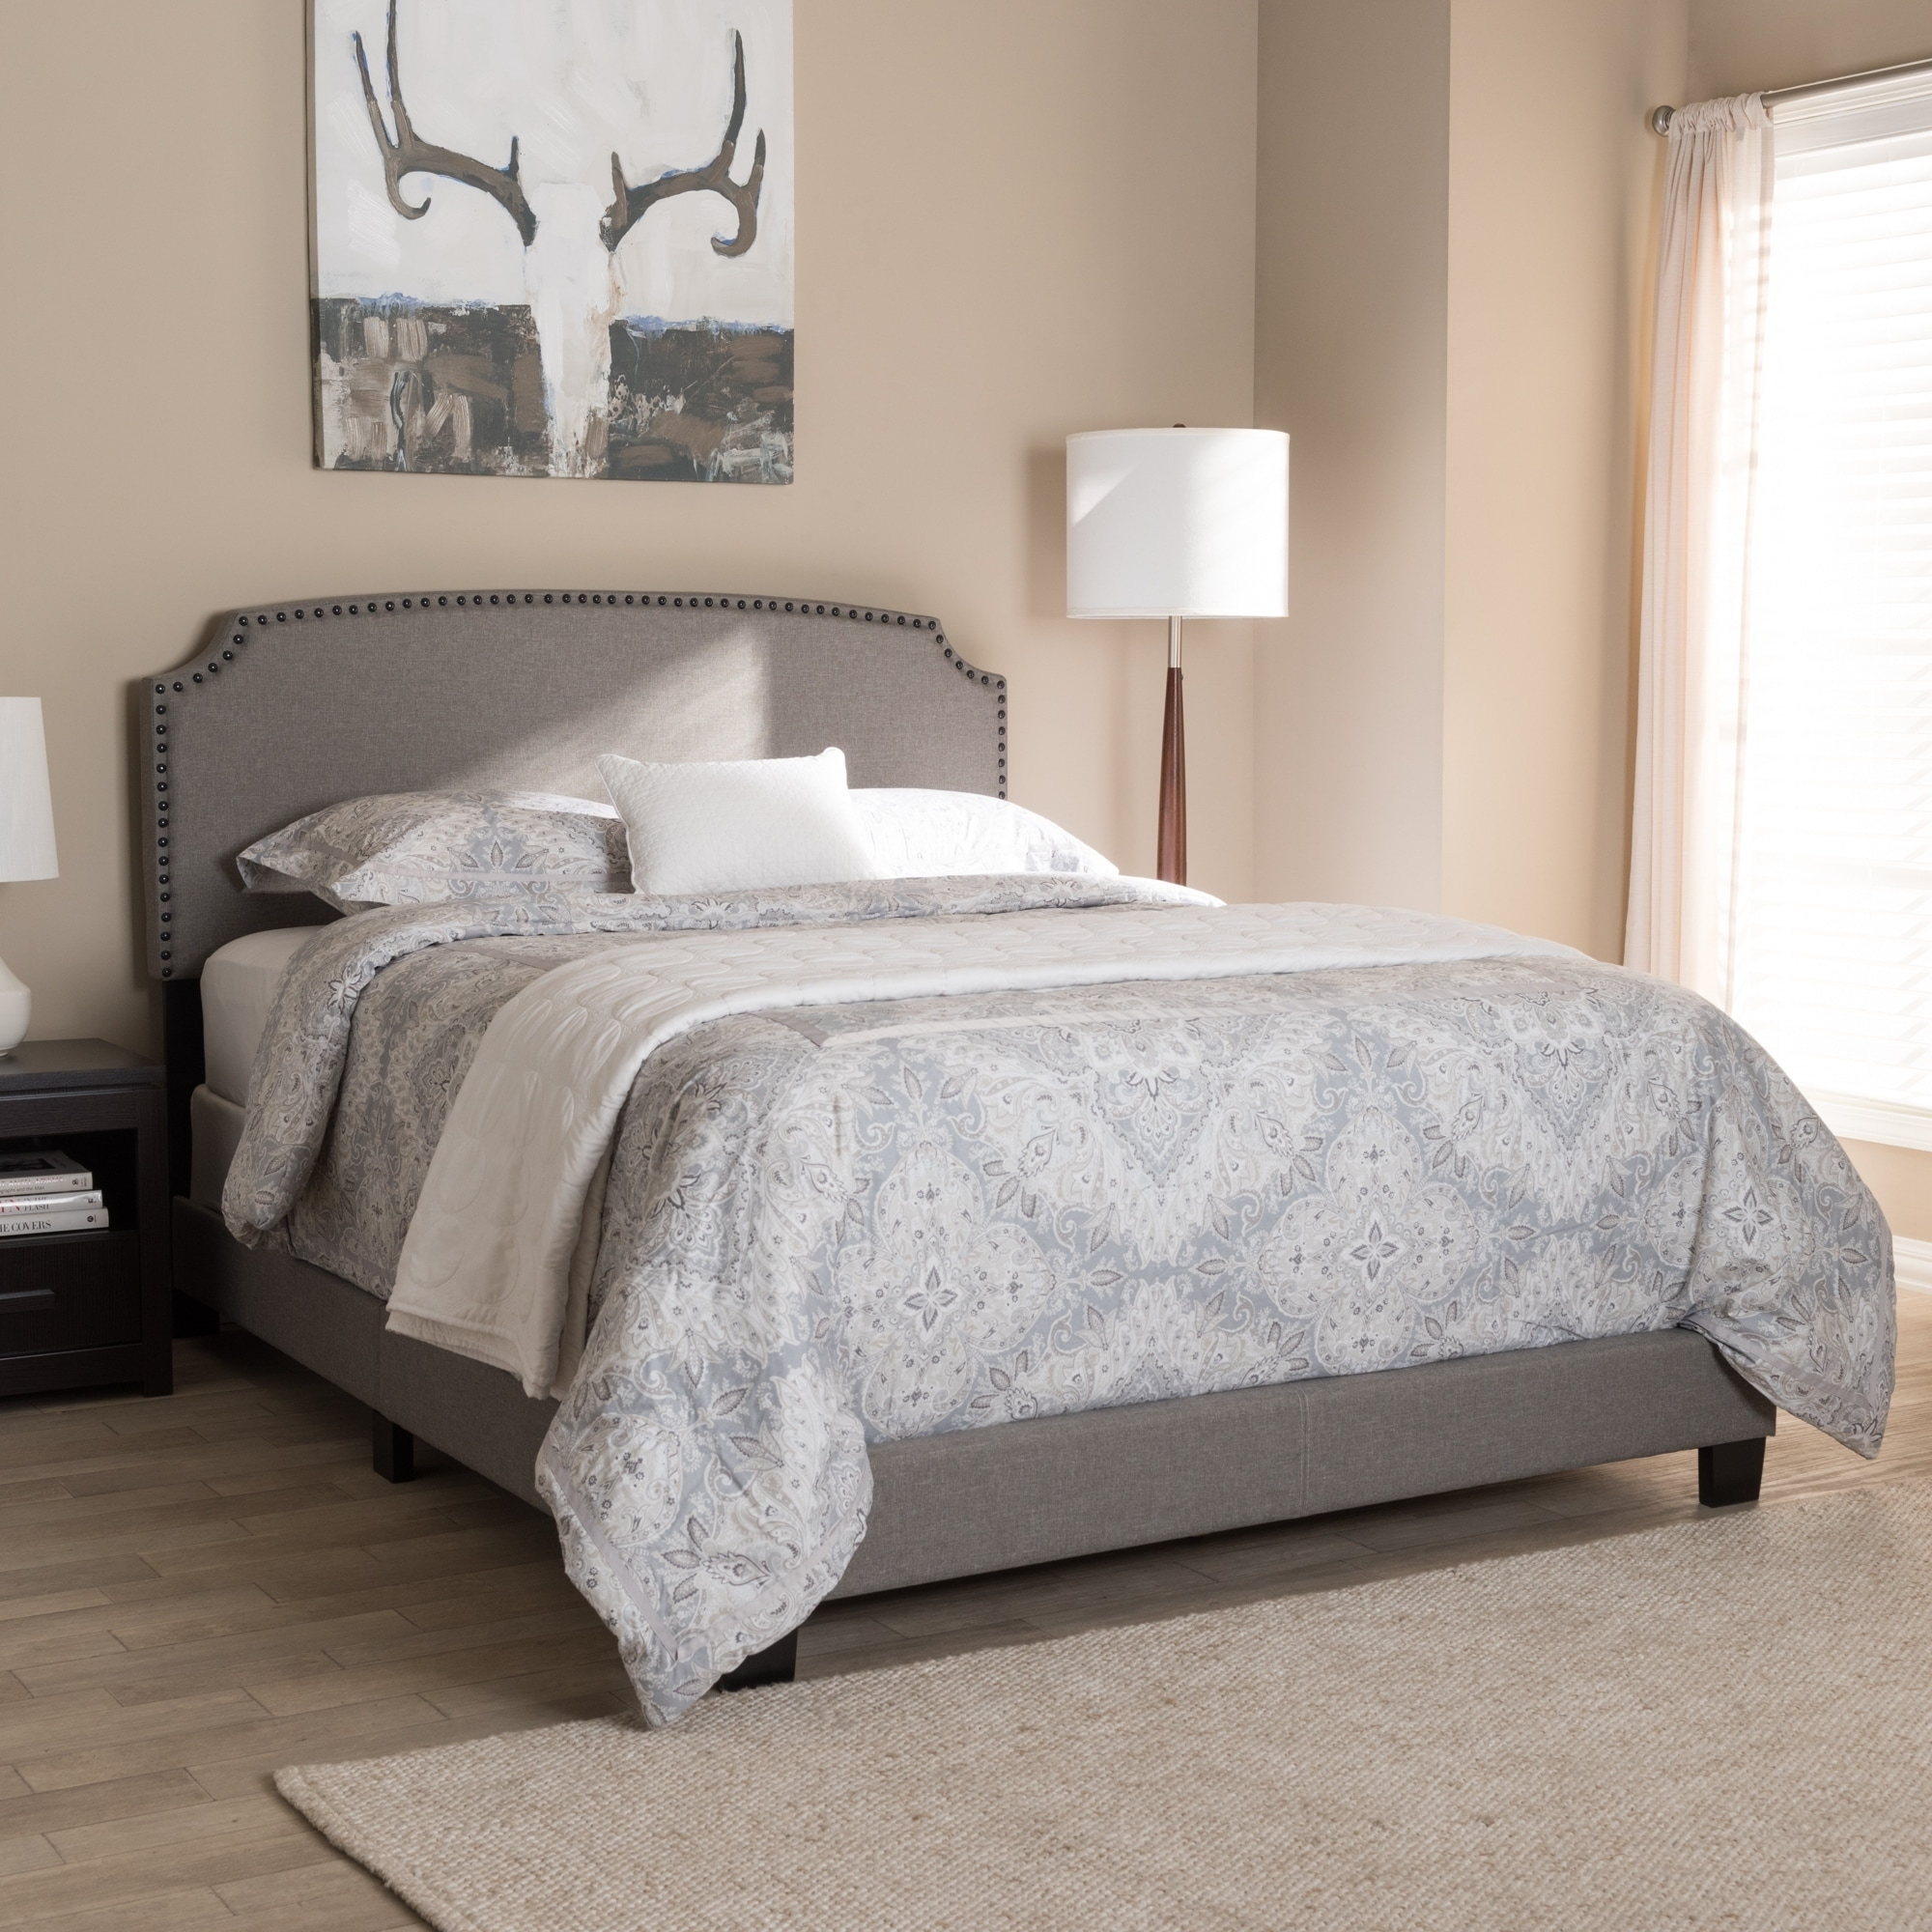 bedding bedroom ideas color stacks the water autumn theme of contemporary carafe royal a treatment bed themed design visitors comfortable decorations for